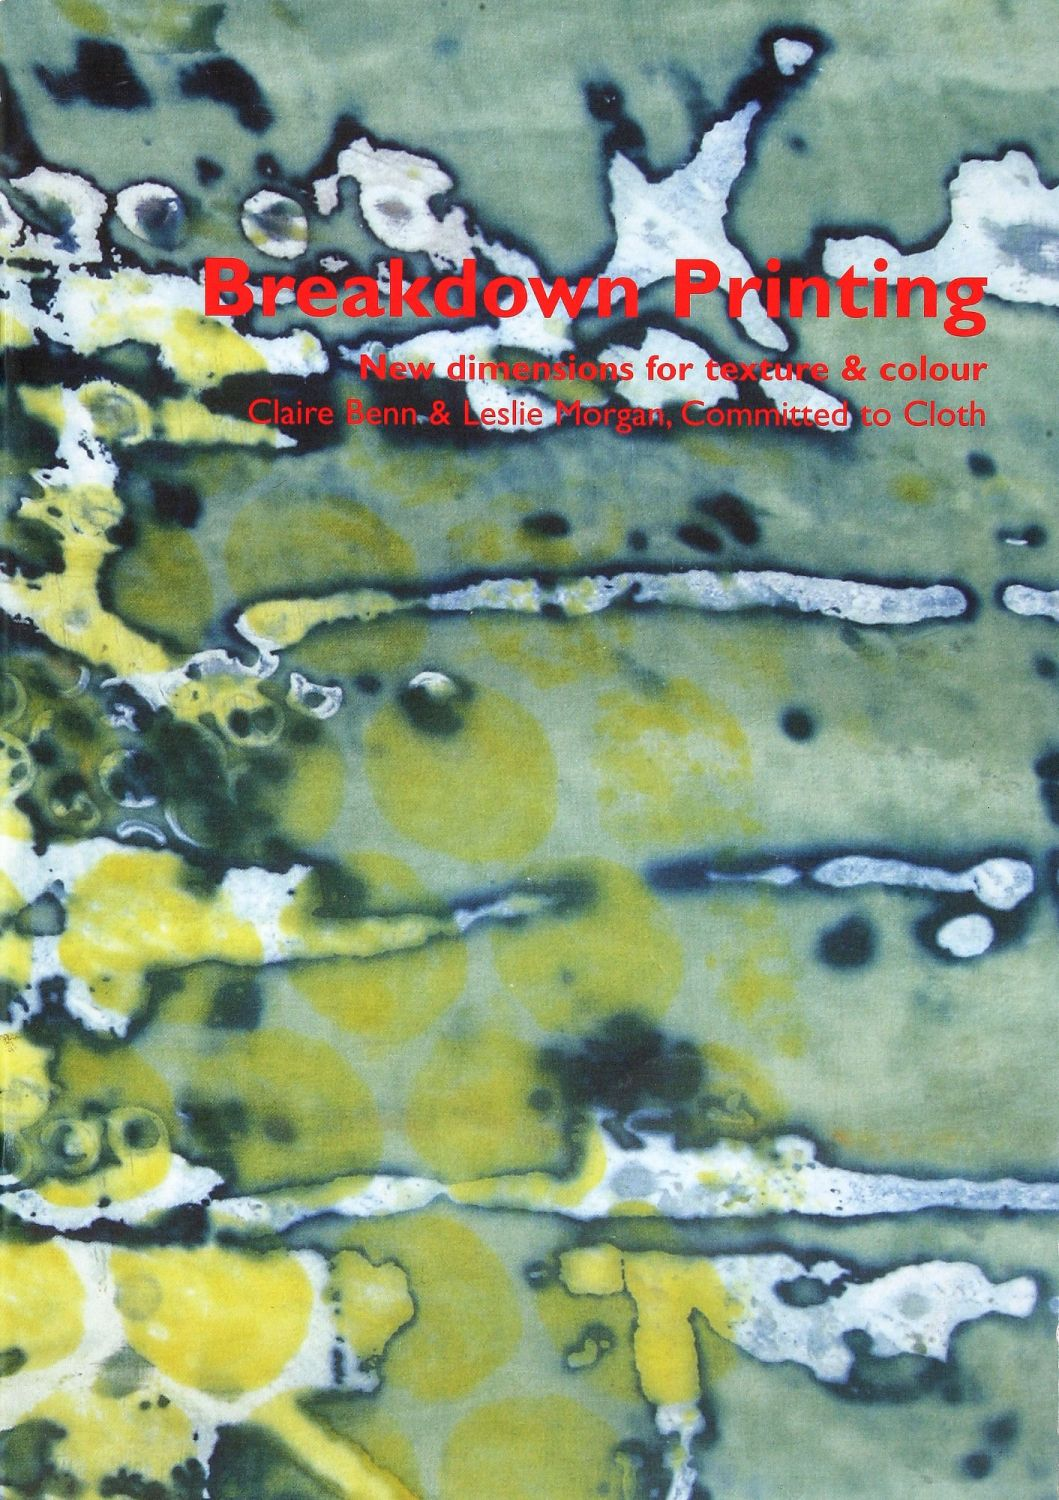 Breakdown Printing - Claire Benn & Leslie Morgan - Committed to Cloth - Inc